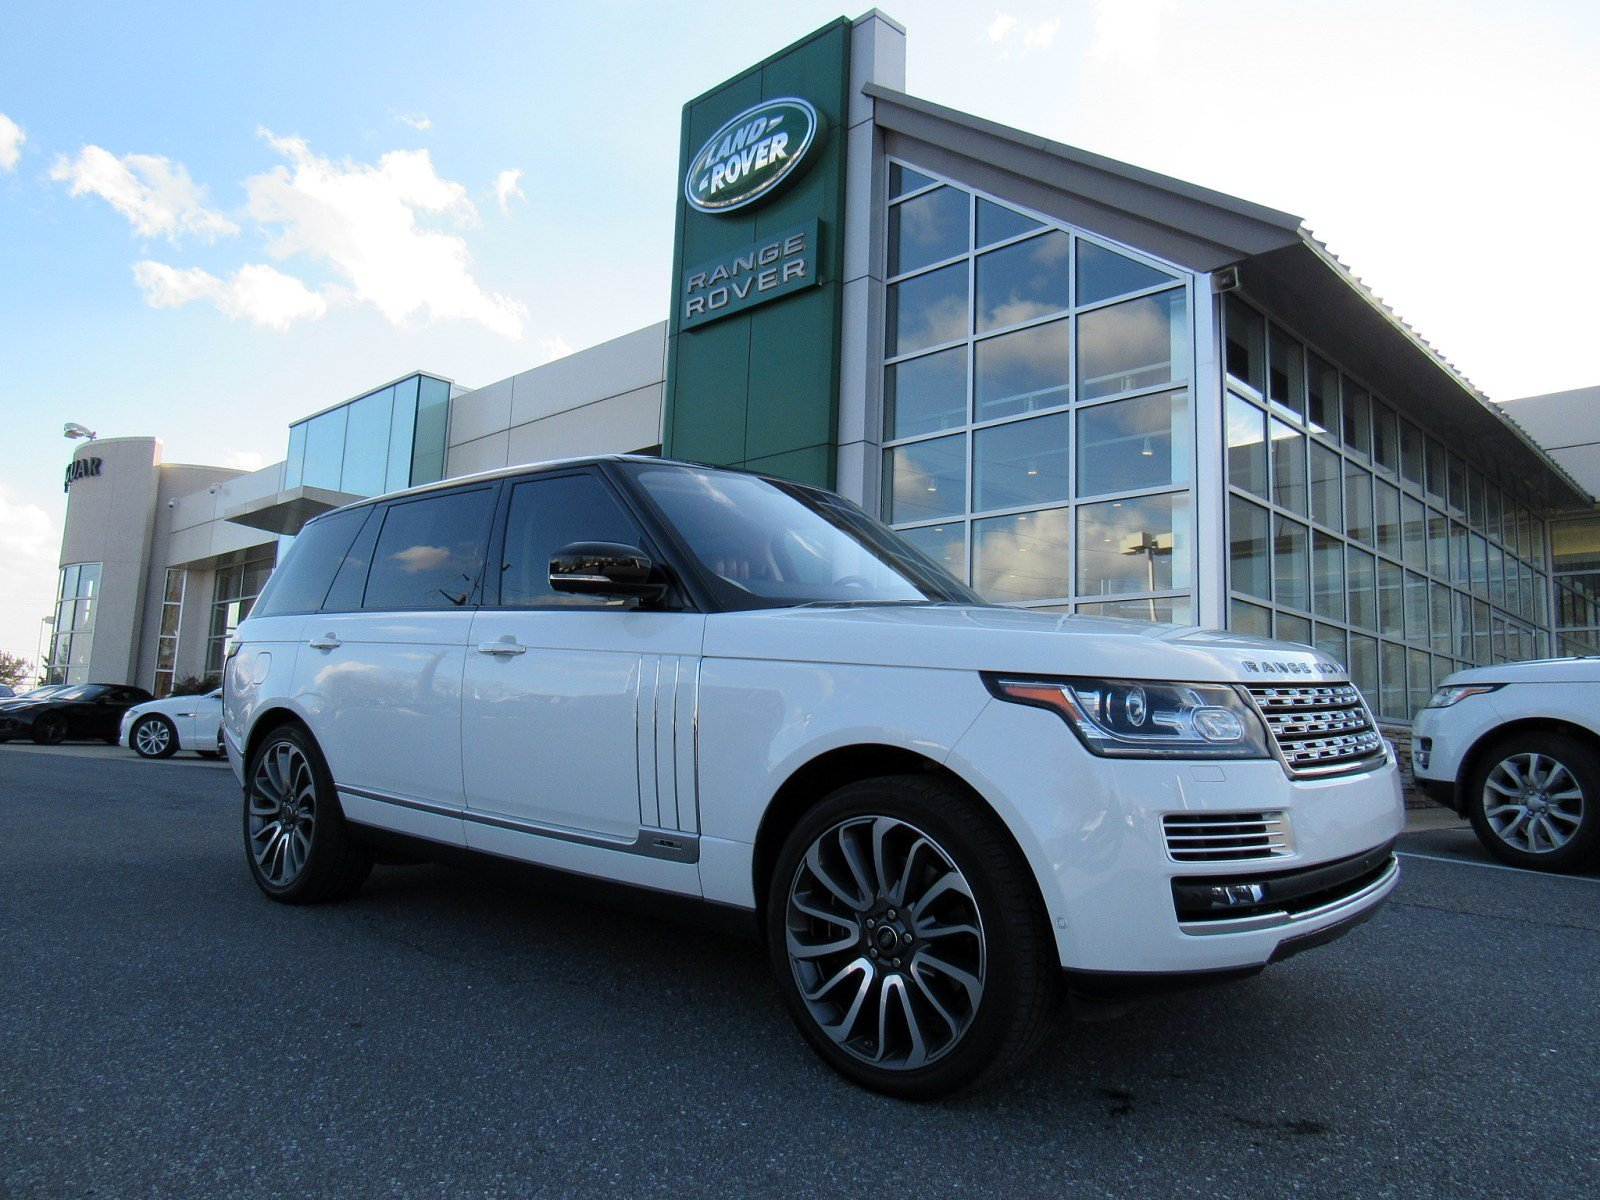 Certified Pre-Owned 2016 Land Rover Range Rover SV Autobiography